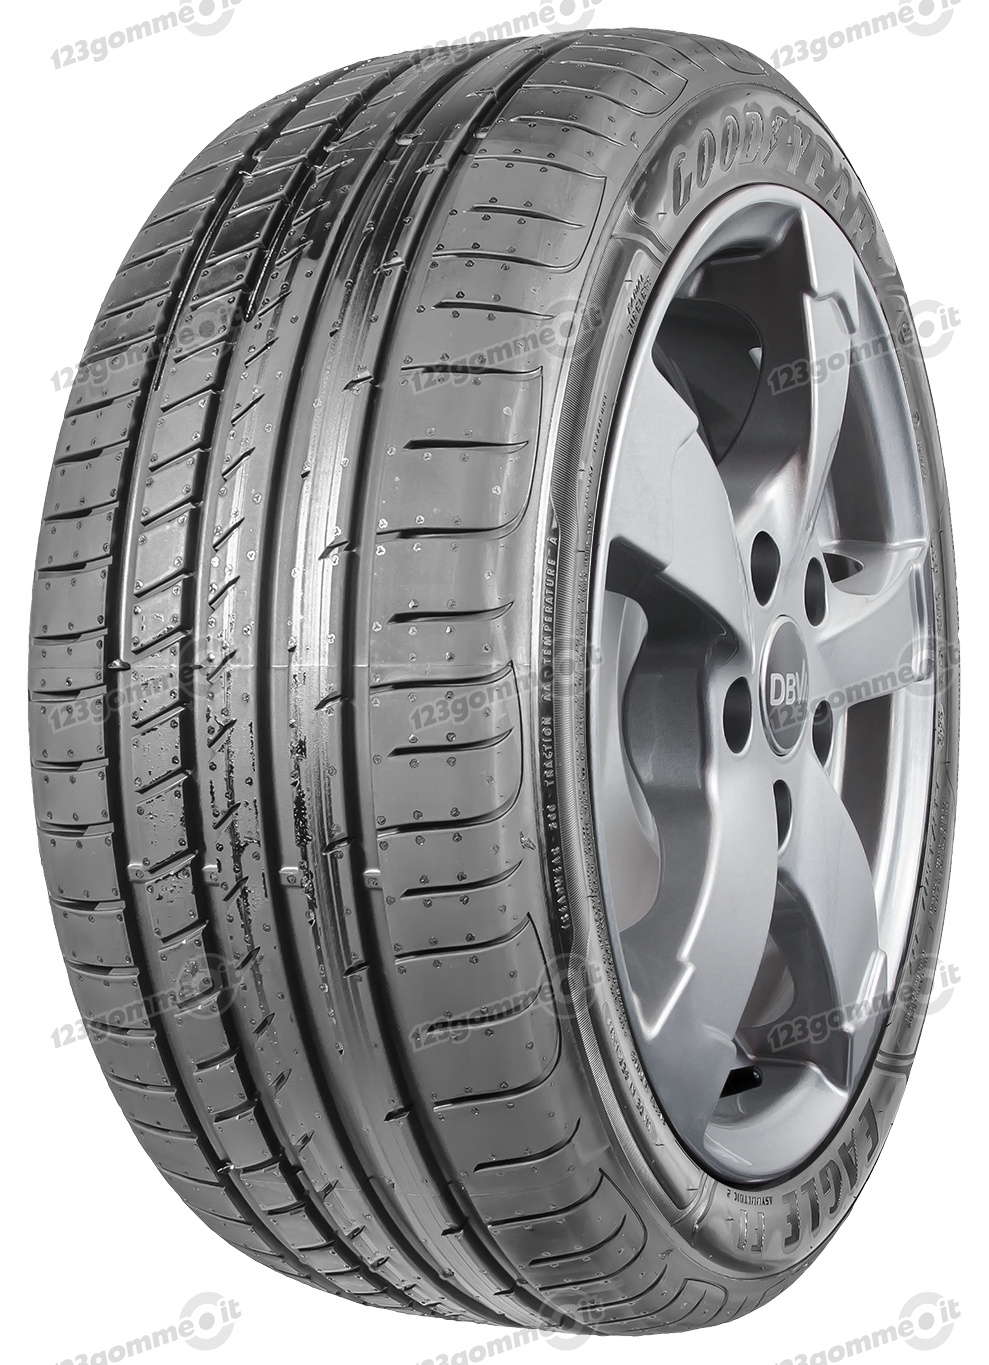 235/40 R18 95Y Eagle F1 Asymmetric 2 XL FP  Eagle F1 Asymmetric 2 XL FP